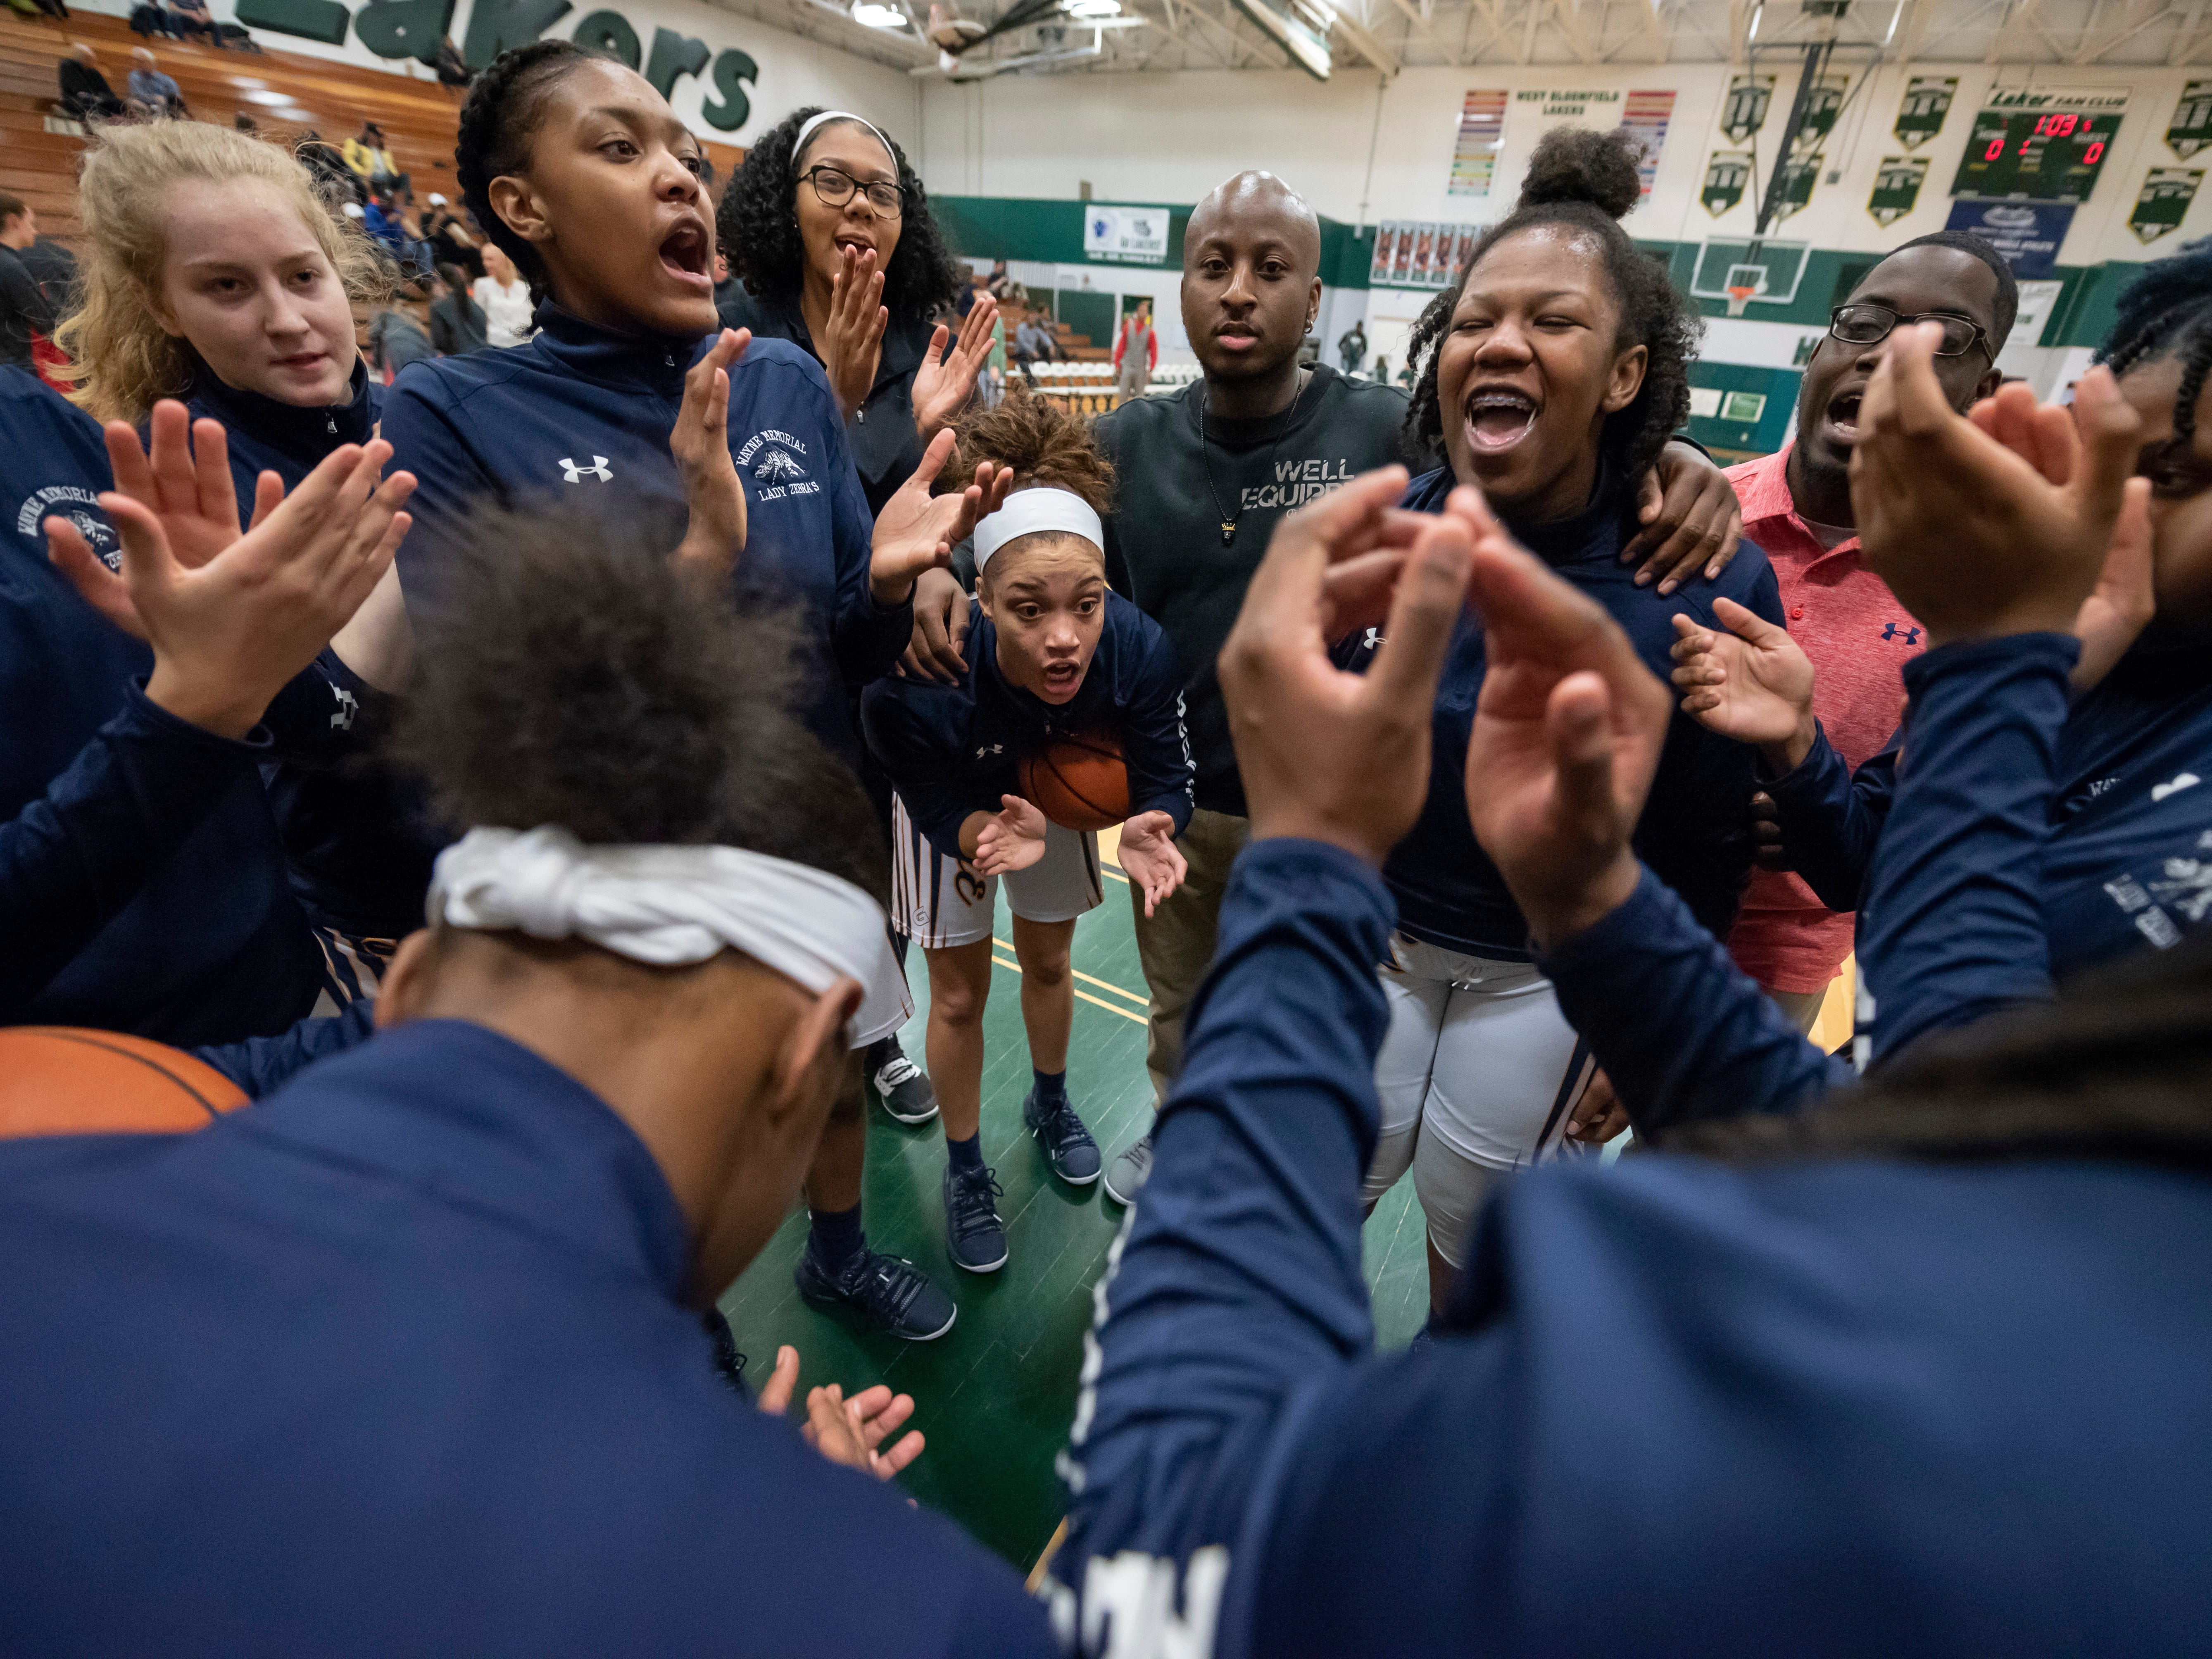 The Wayne Memorial girls basketball team rallies together before the start of a quarterfinals high school basketball playoffs game against Temperance Bedford at West Bloomfield High School, March 19, 2019. Wayne Memorial defeated Temperance Bedford 50-28.